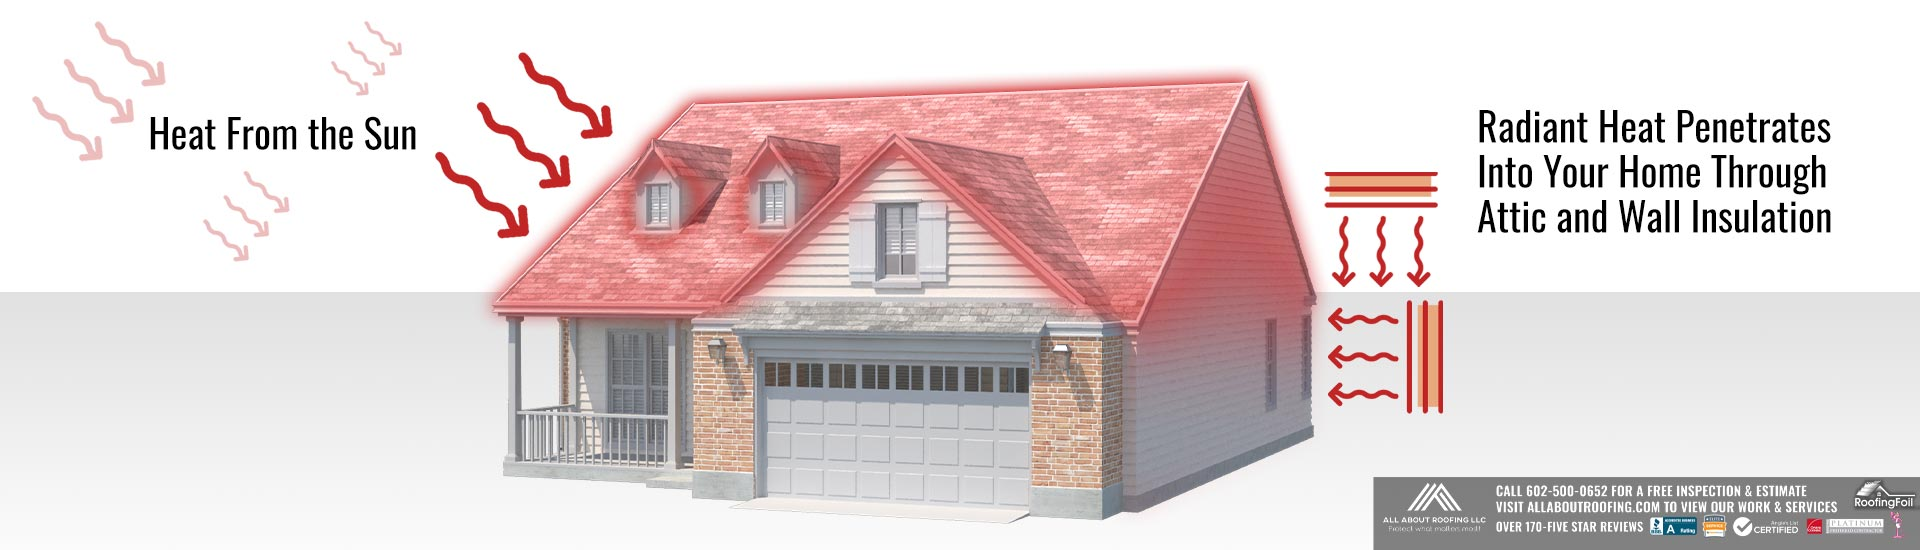 Roof and How Radiant Heat Works